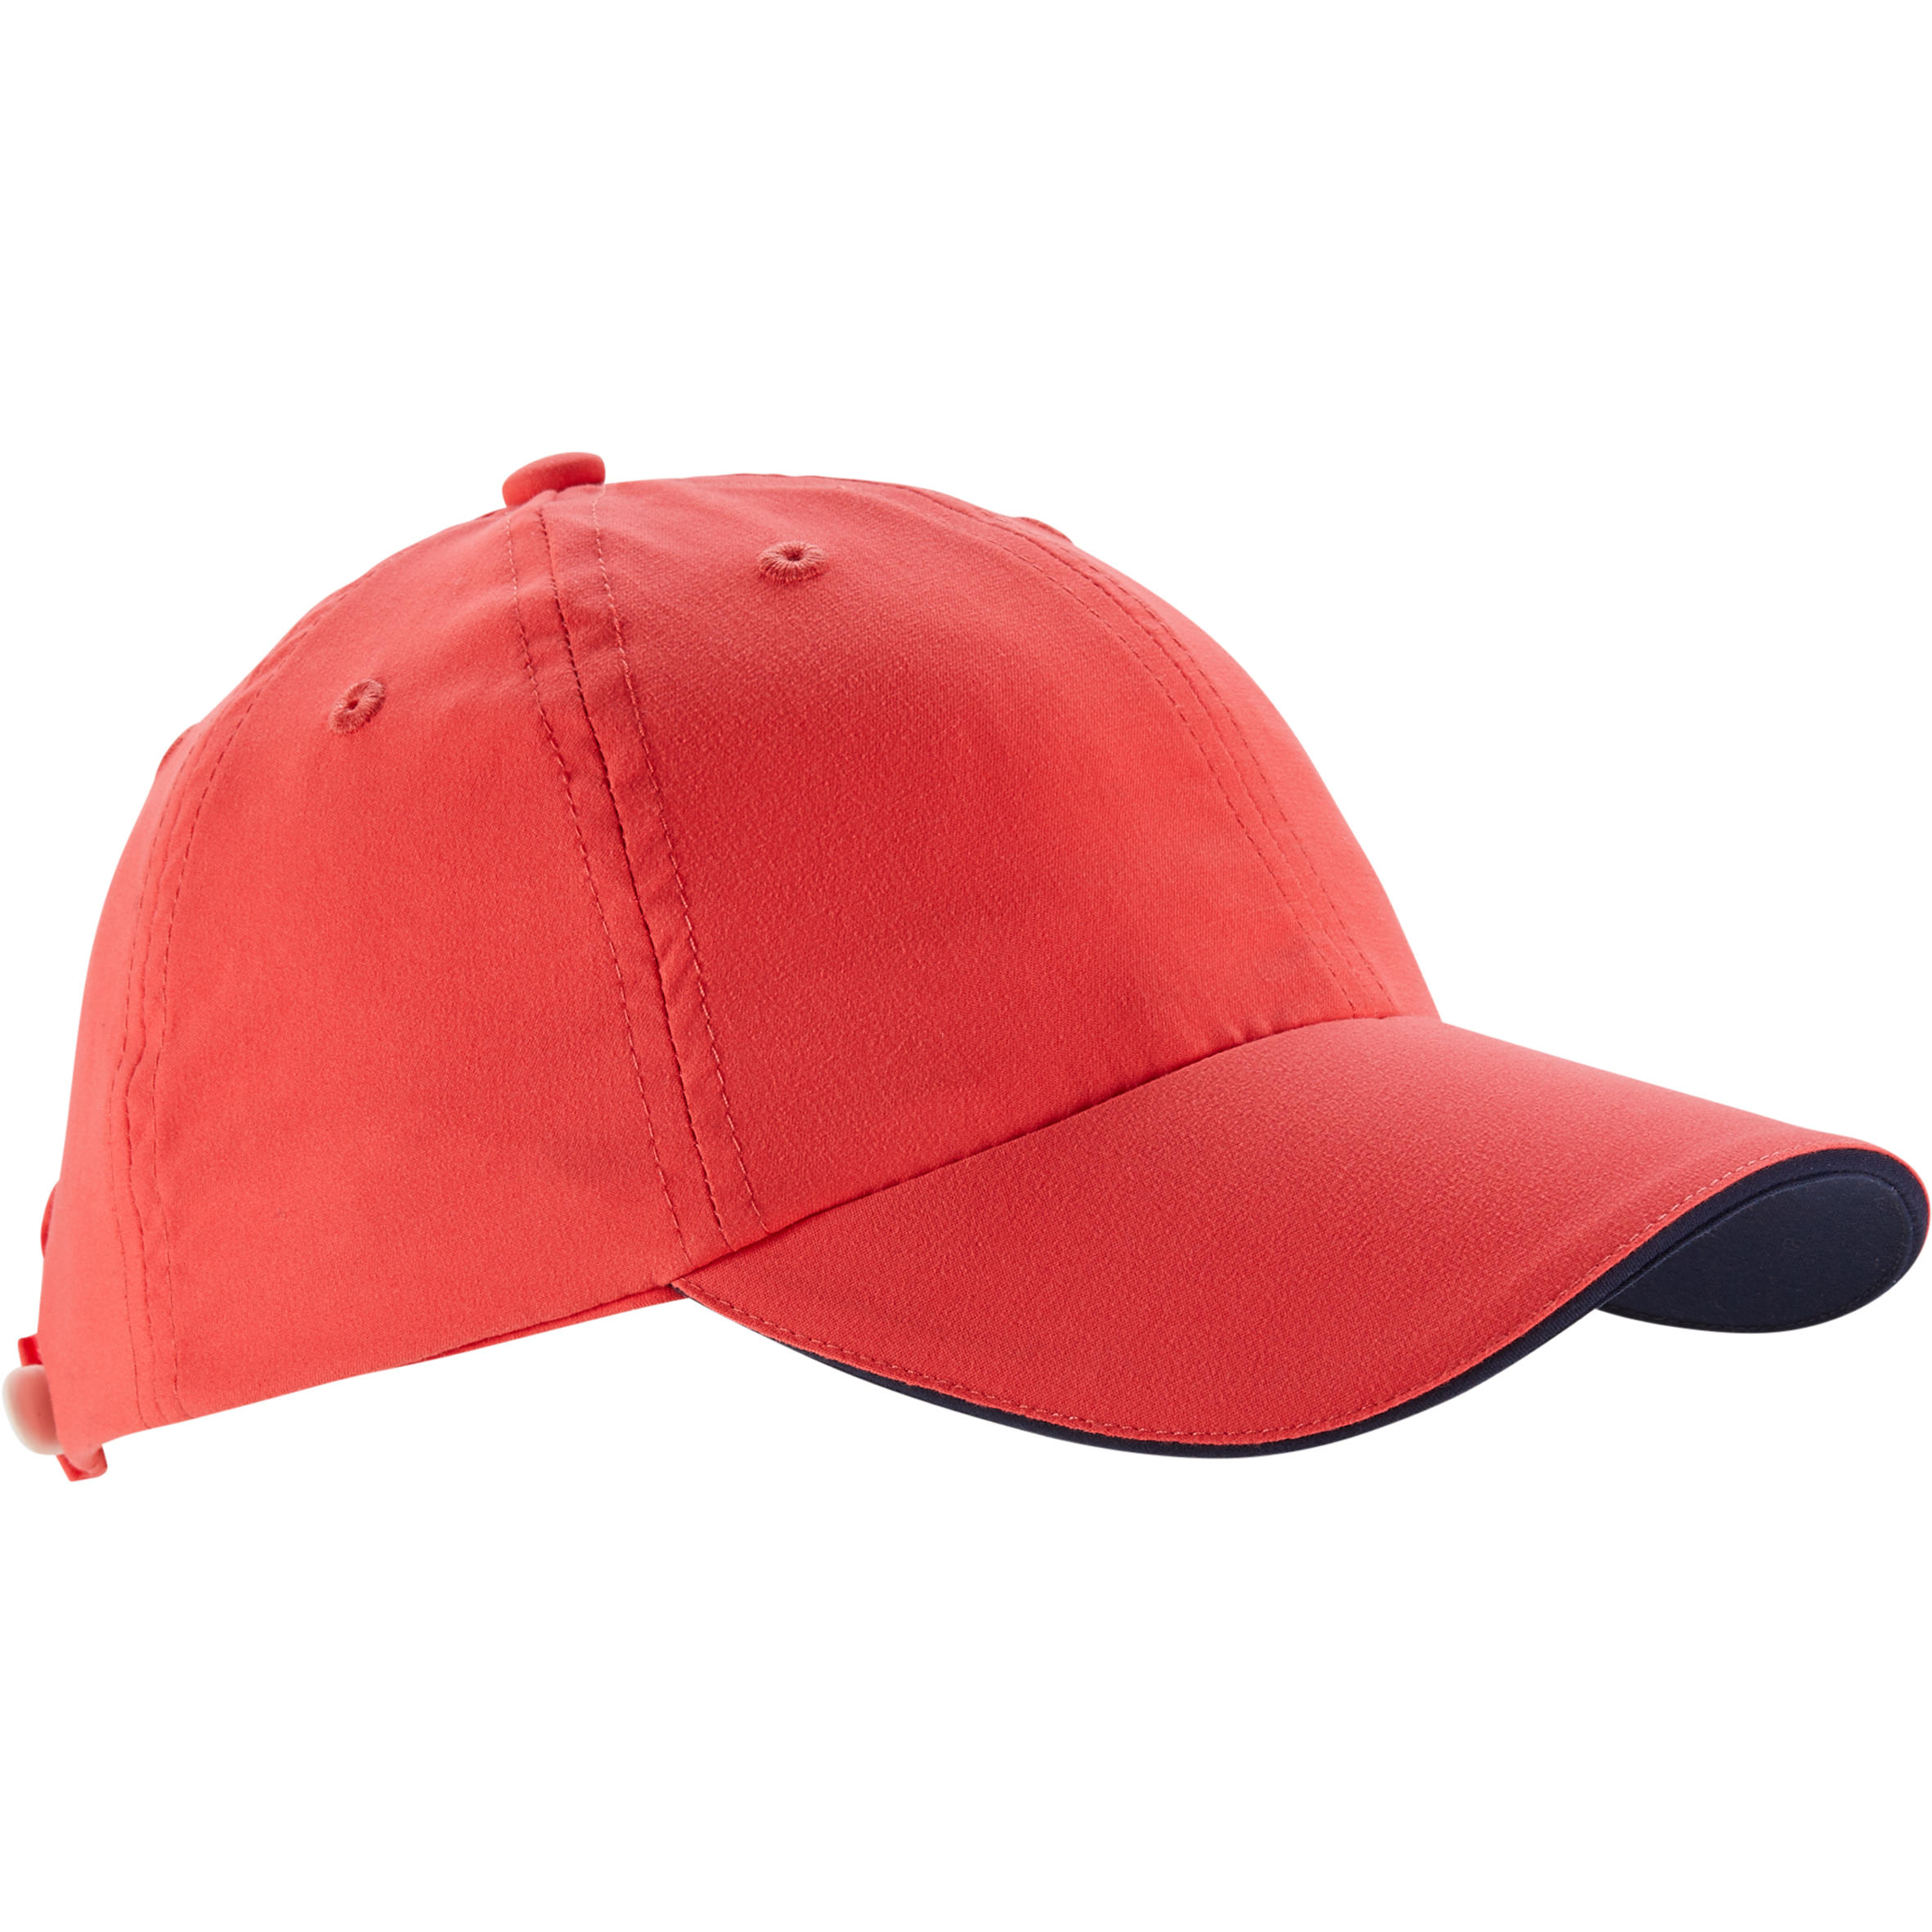 Kids Racket Sports Cap - Coral